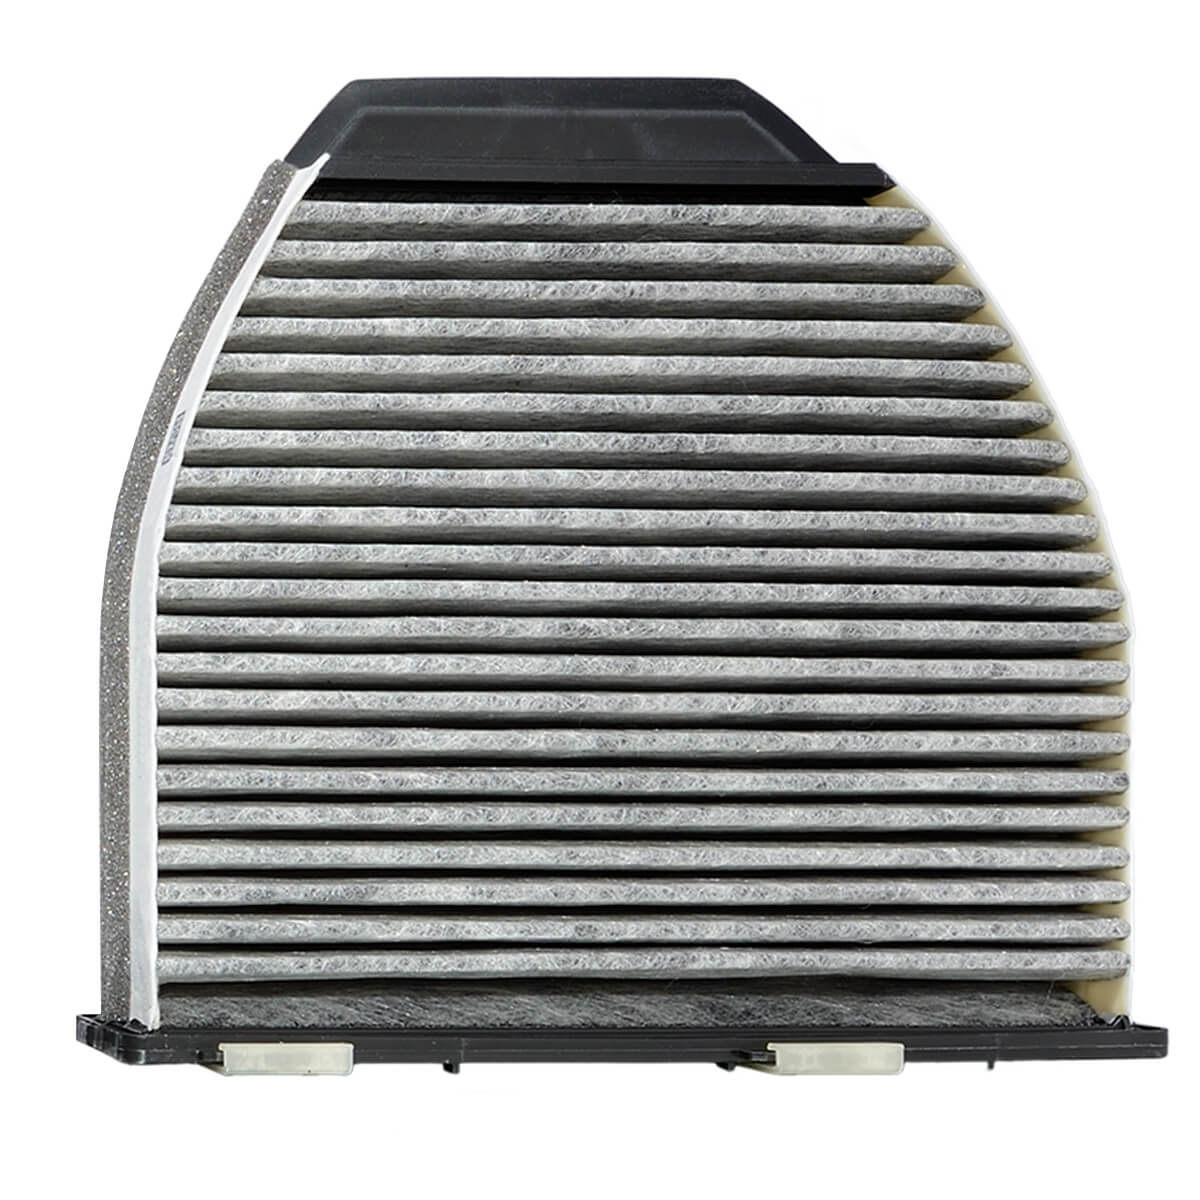 HONDA STREAM Cabin Filter